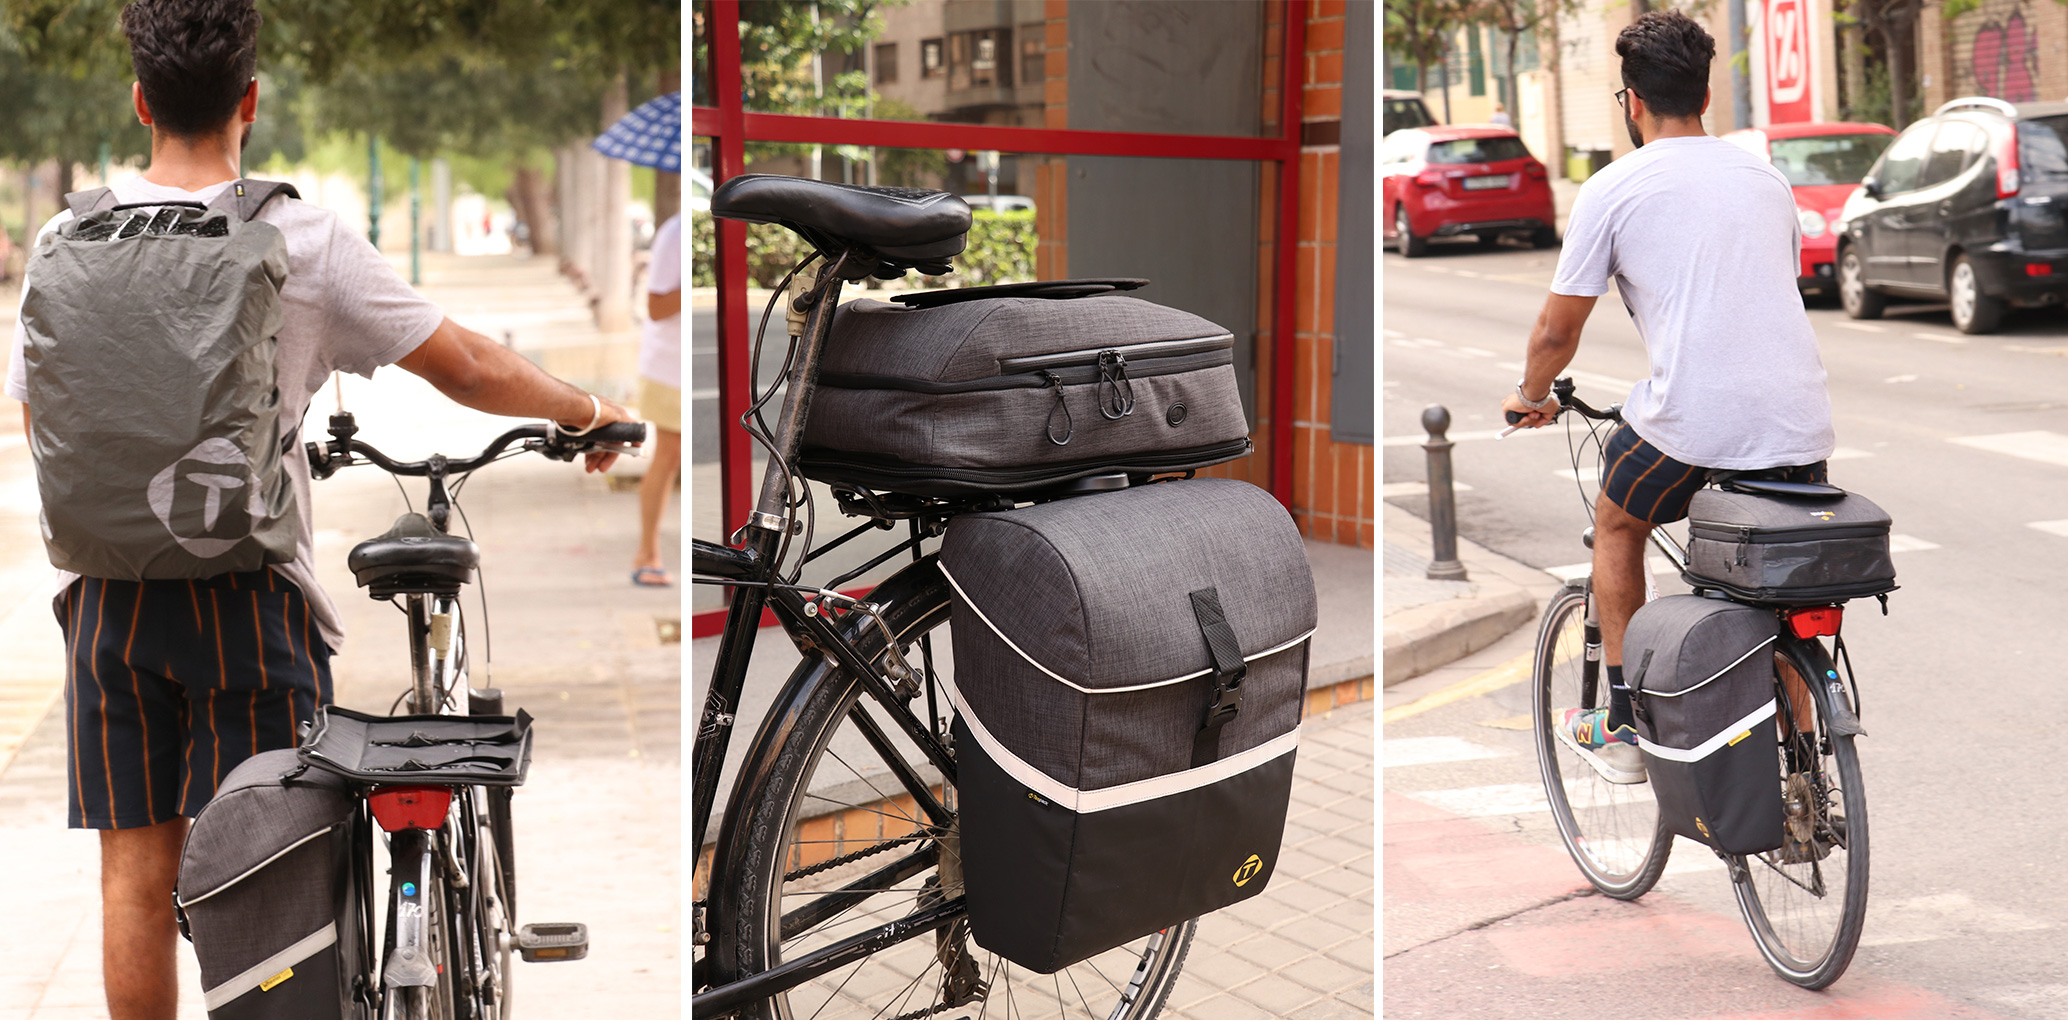 Cyclist with Wheeler Smart Cycling Backpack on his bike.